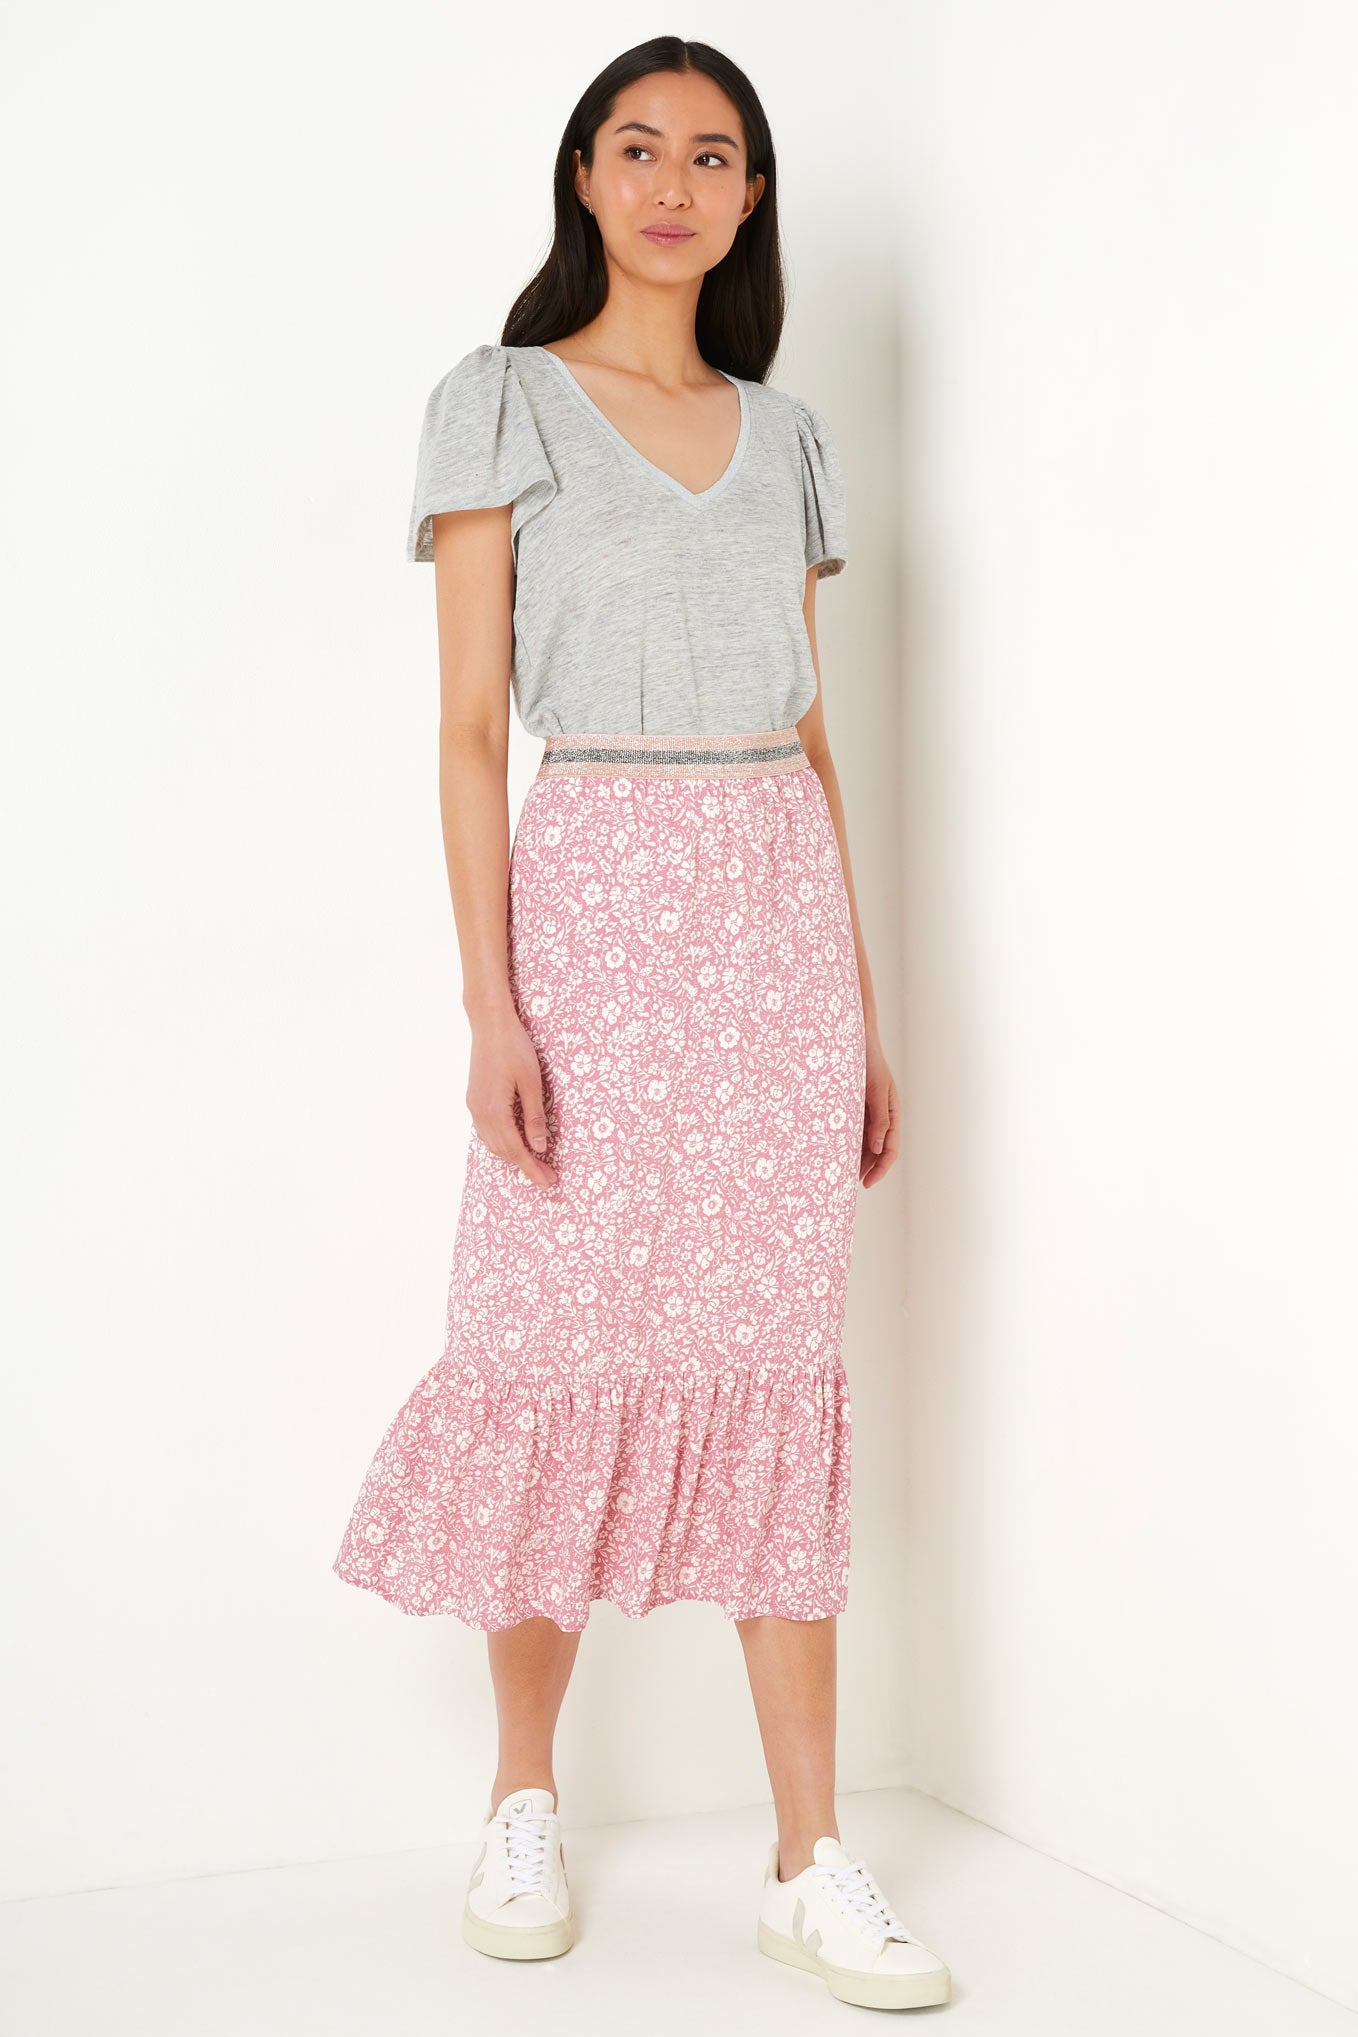 Layla Two Tone Floral Print Skirt - Pink